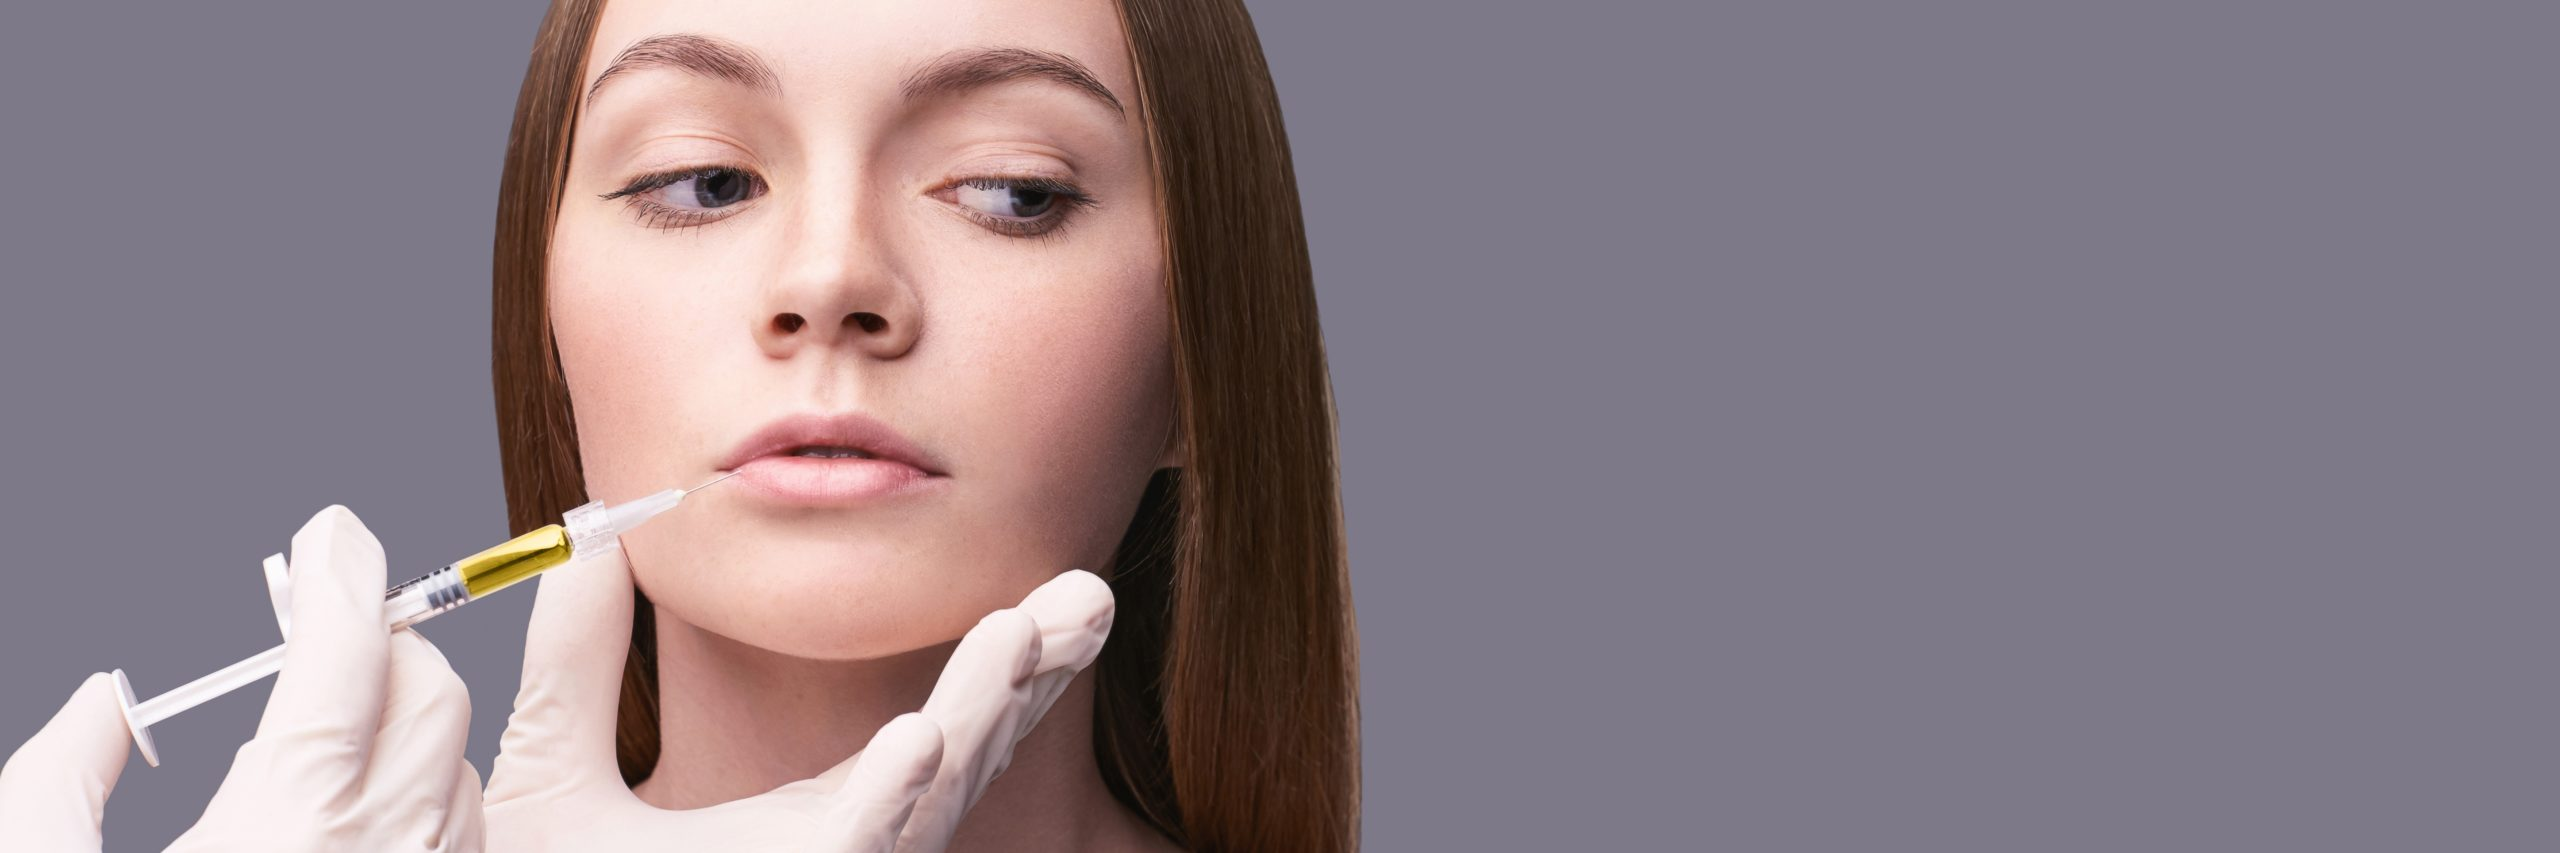 Closeup of rejuvenation lip. Beauty female face. Plastic surgery. Healthcare concept. Medical cosmetology, dermatology. Spa treatment. Hands in medicine gloves. Horizontal banner with copyspace